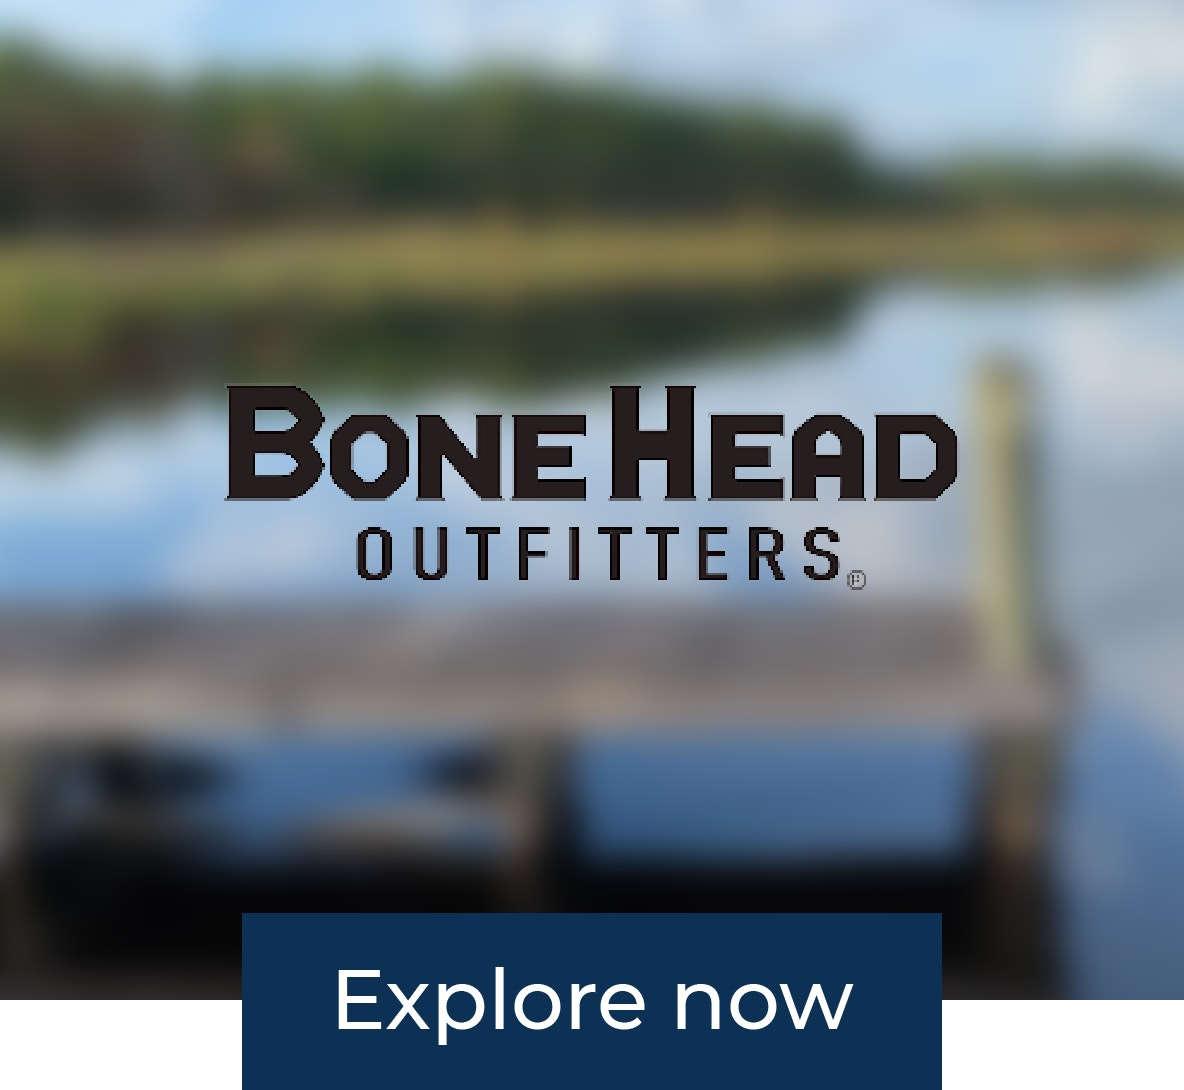 Bone Head Outfitters